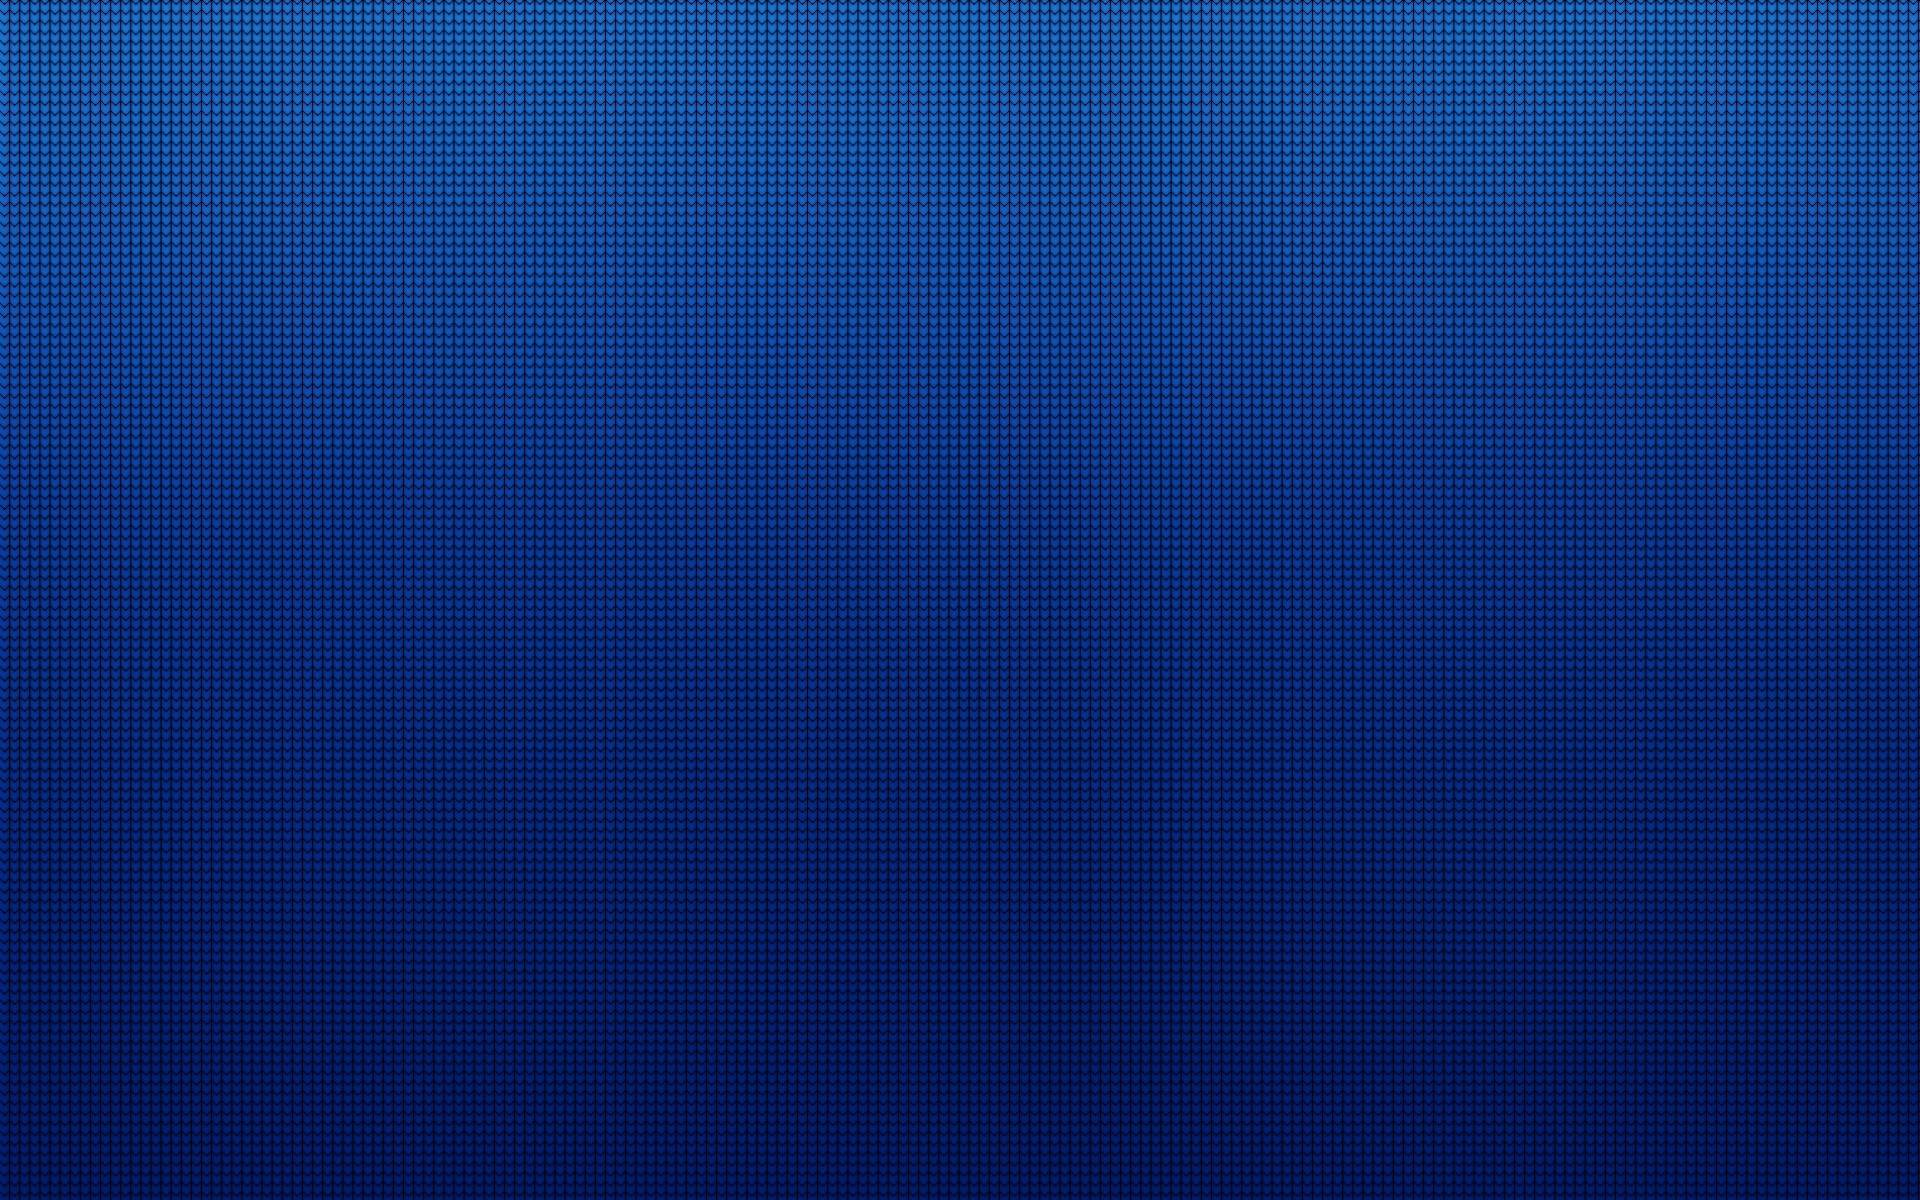 Plain blue backgrounds wallpapers wallpaper cave for Cheap plain white wallpaper